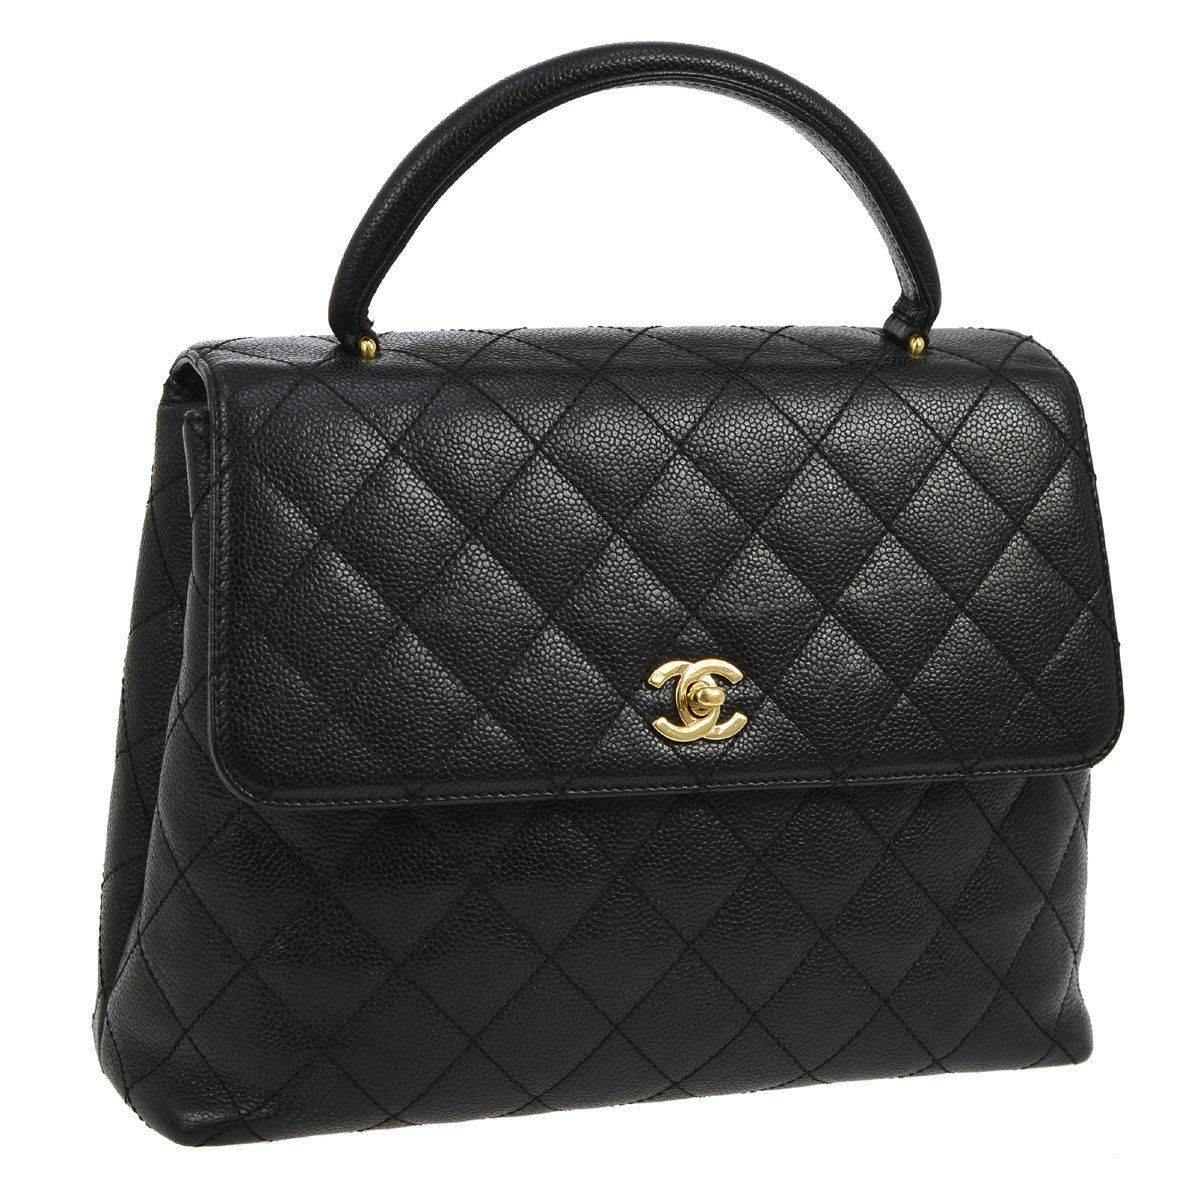 Chanel Caviar Evening Top Handle Satchel Flap Bag For Sale at 1stdibs 57d0ee478bd5c